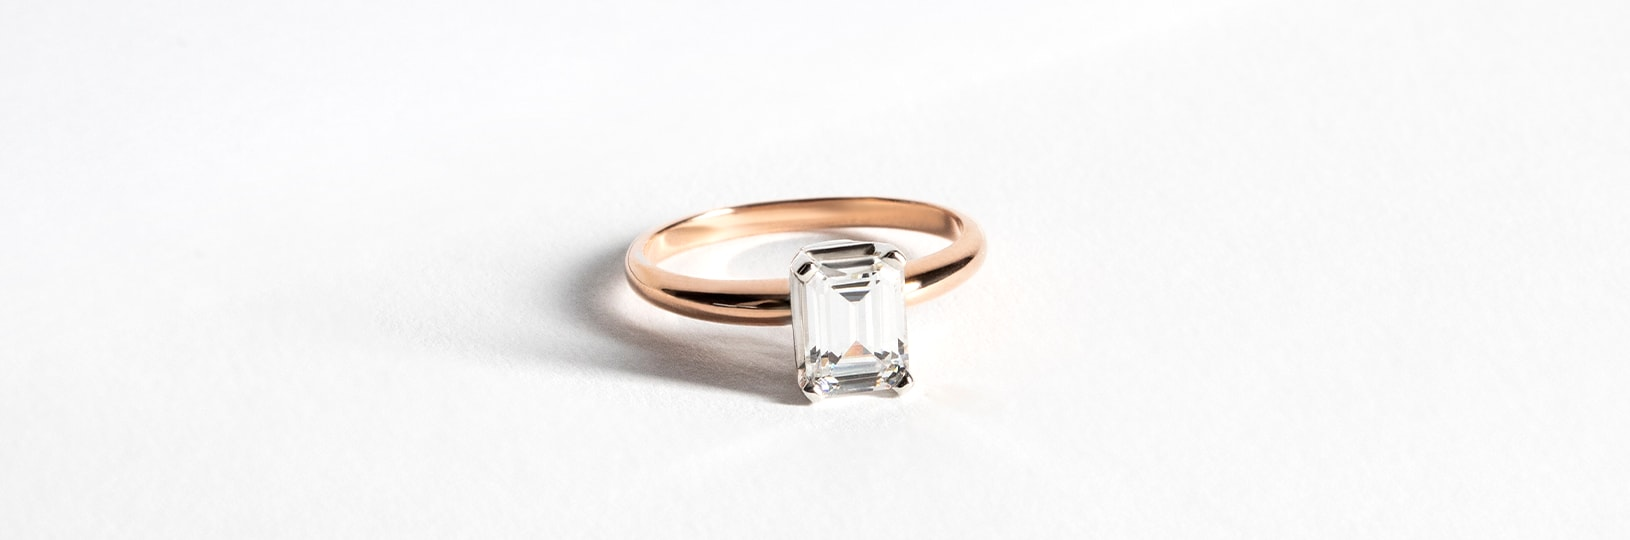 A solitaire rose gold engagement ring with an emerald cut stone